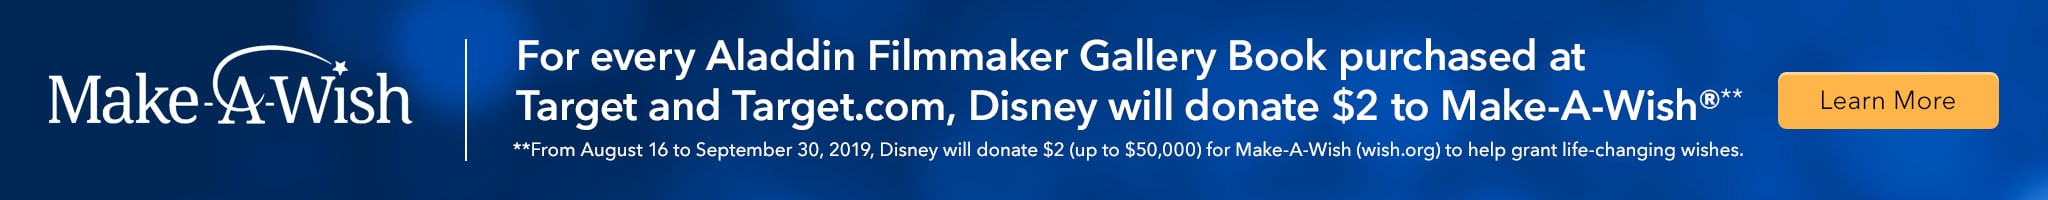 For every Aladdin Filmmaker Gallery Book purchased at Target and Target.com, Disney will donate $2 to Make-A-Wish®** **From August 16 to September 30, 2019, Disney will donate $2 (up to $50,000) for Make-A-Wish (wish.org) to help grant life-changing wishes.